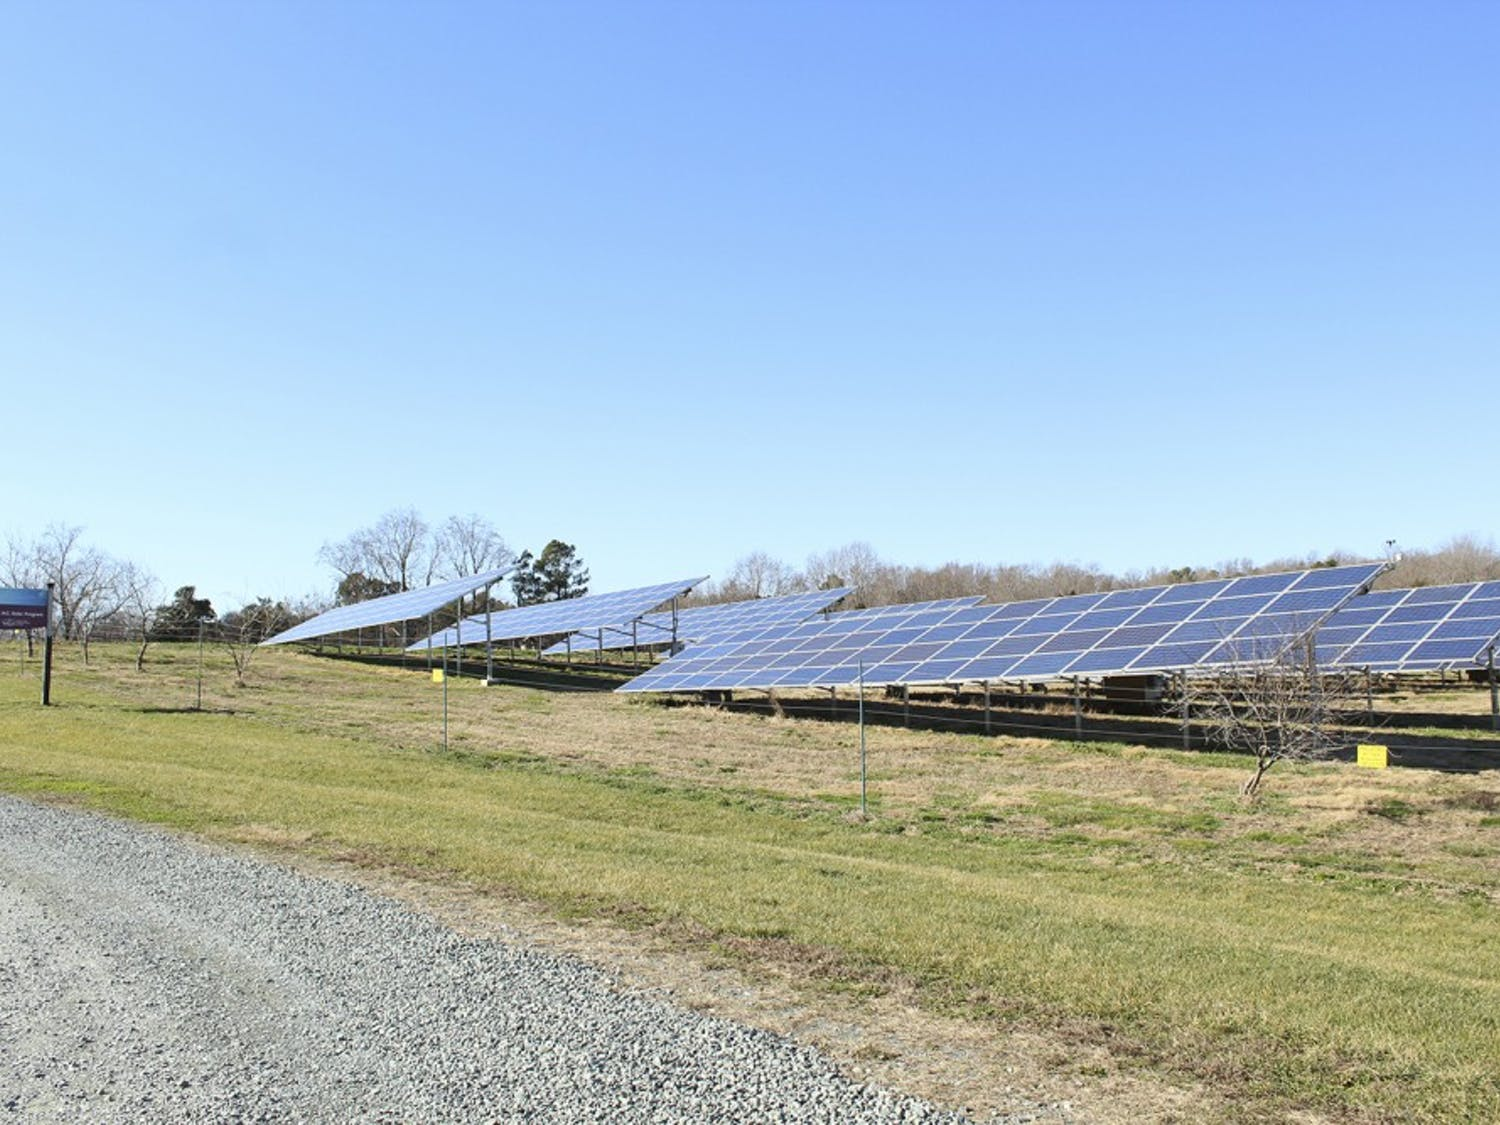 Currituck County, on the northeastern coast of North Carolina, is considering banning solar farms because of loss of agricultural land.